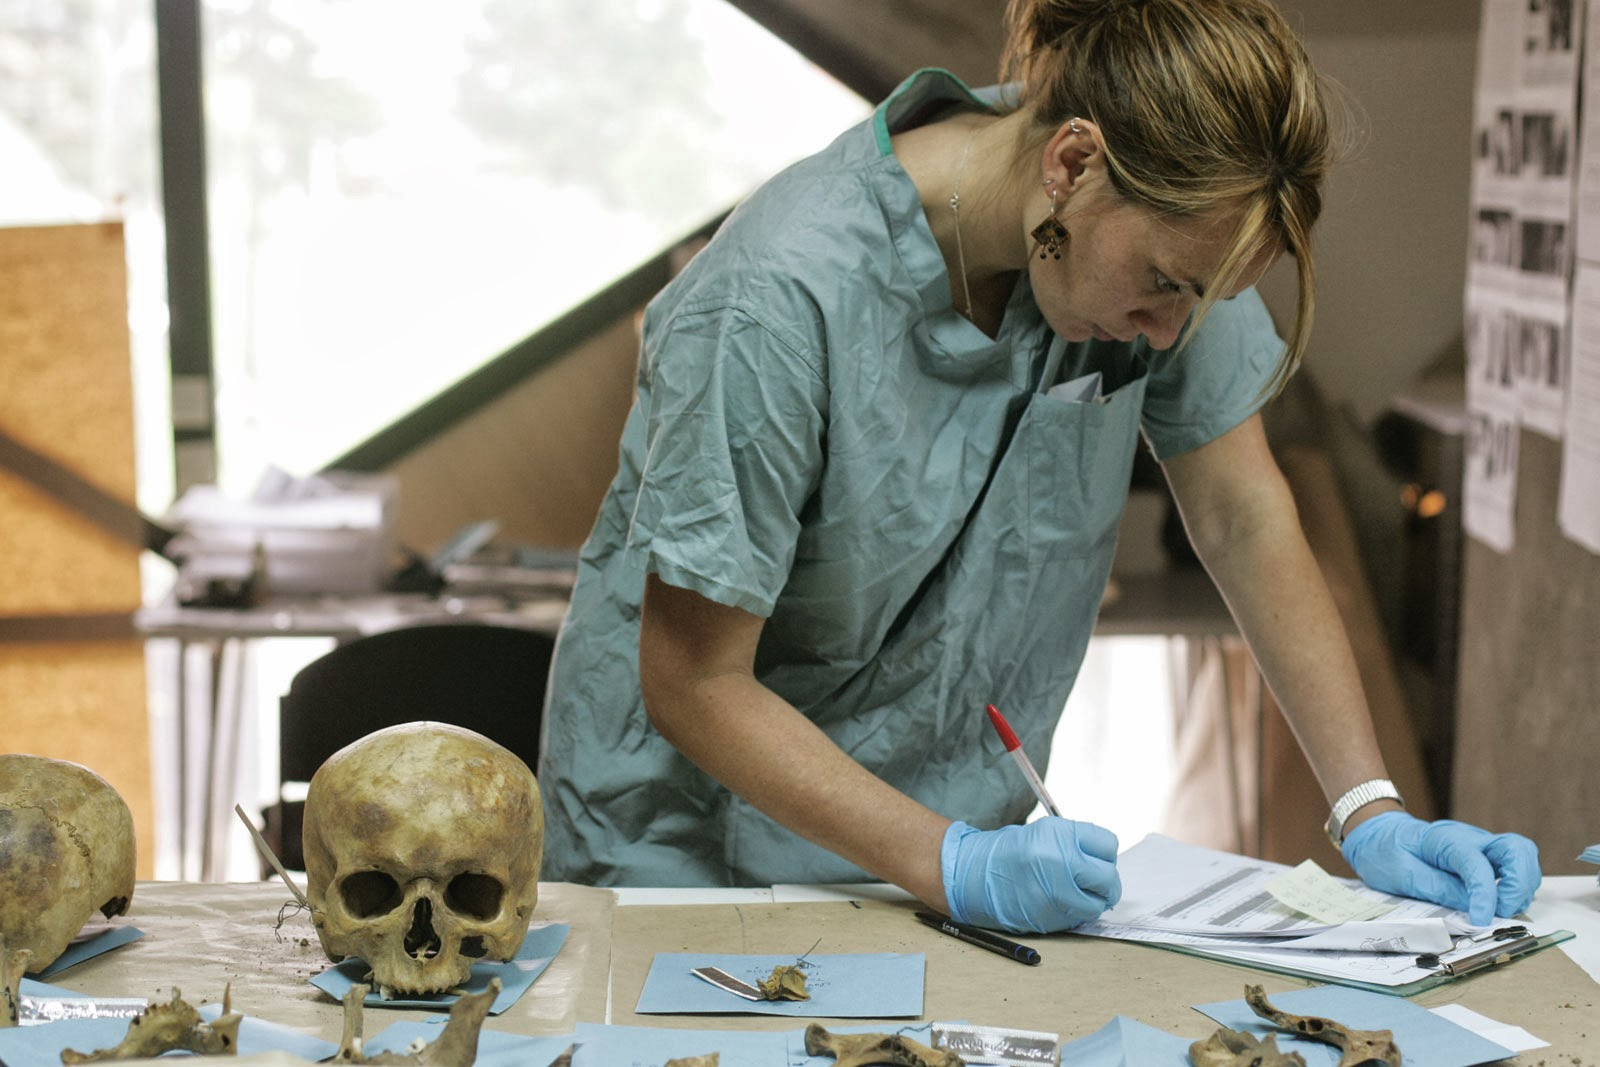 bones bodies behavior essays on biological anthropology Free anthropology papers, essays, and research papers  four areas,  sociocultural anthropology, biological/physical anthropology, archaeology, and  linguistics  to identify and analyze social, cultural, behavioural and  environmental factors in  she collects all kinds of bones so, she can contrive  and test ideas about the.